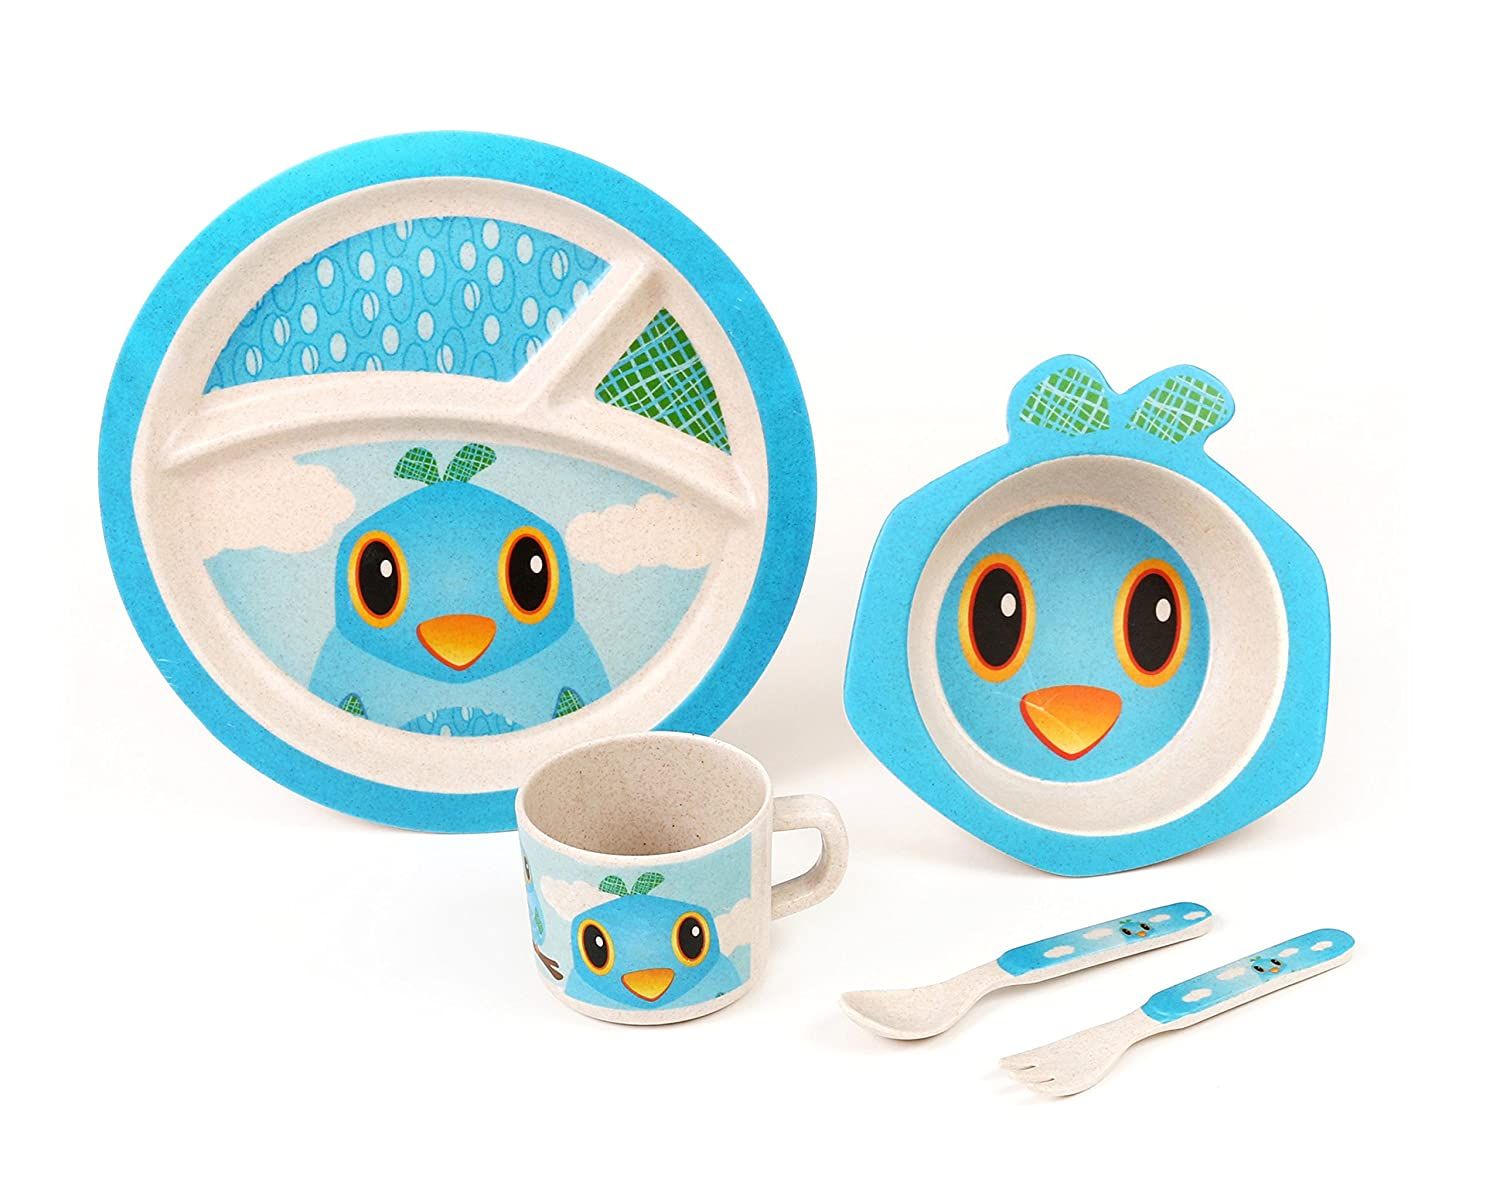 Amazon.com  BAMBOO KIDS Meal Set | Kids Plate Set | Toddler Dinner Set | Eco-Friendly Bamboo Dishes | Food-Safe Feeding Set for Toddlers and Little Kids ...  sc 1 st  Amazon.com & Amazon.com : BAMBOO KIDS Meal Set | Kids Plate Set | Toddler Dinner ...